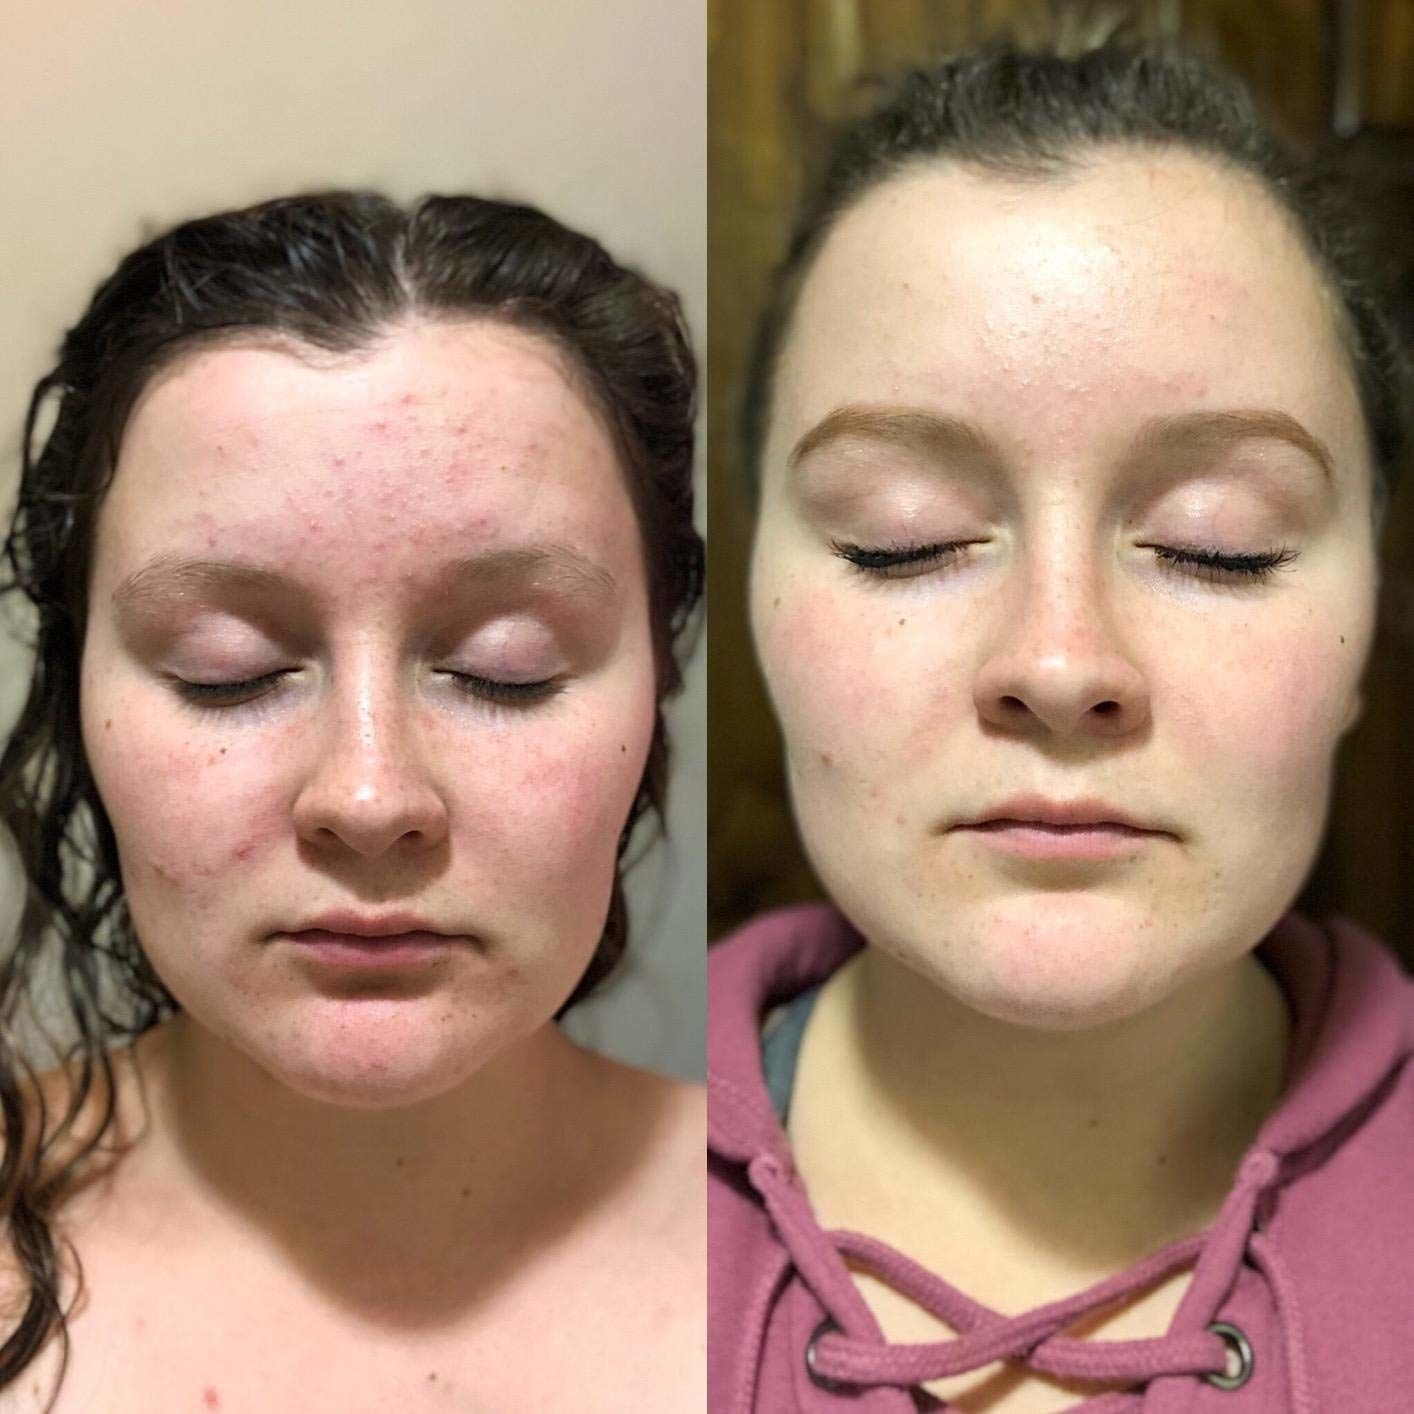 A before/after of a reviewer's face with reduced redness and small acne bumps